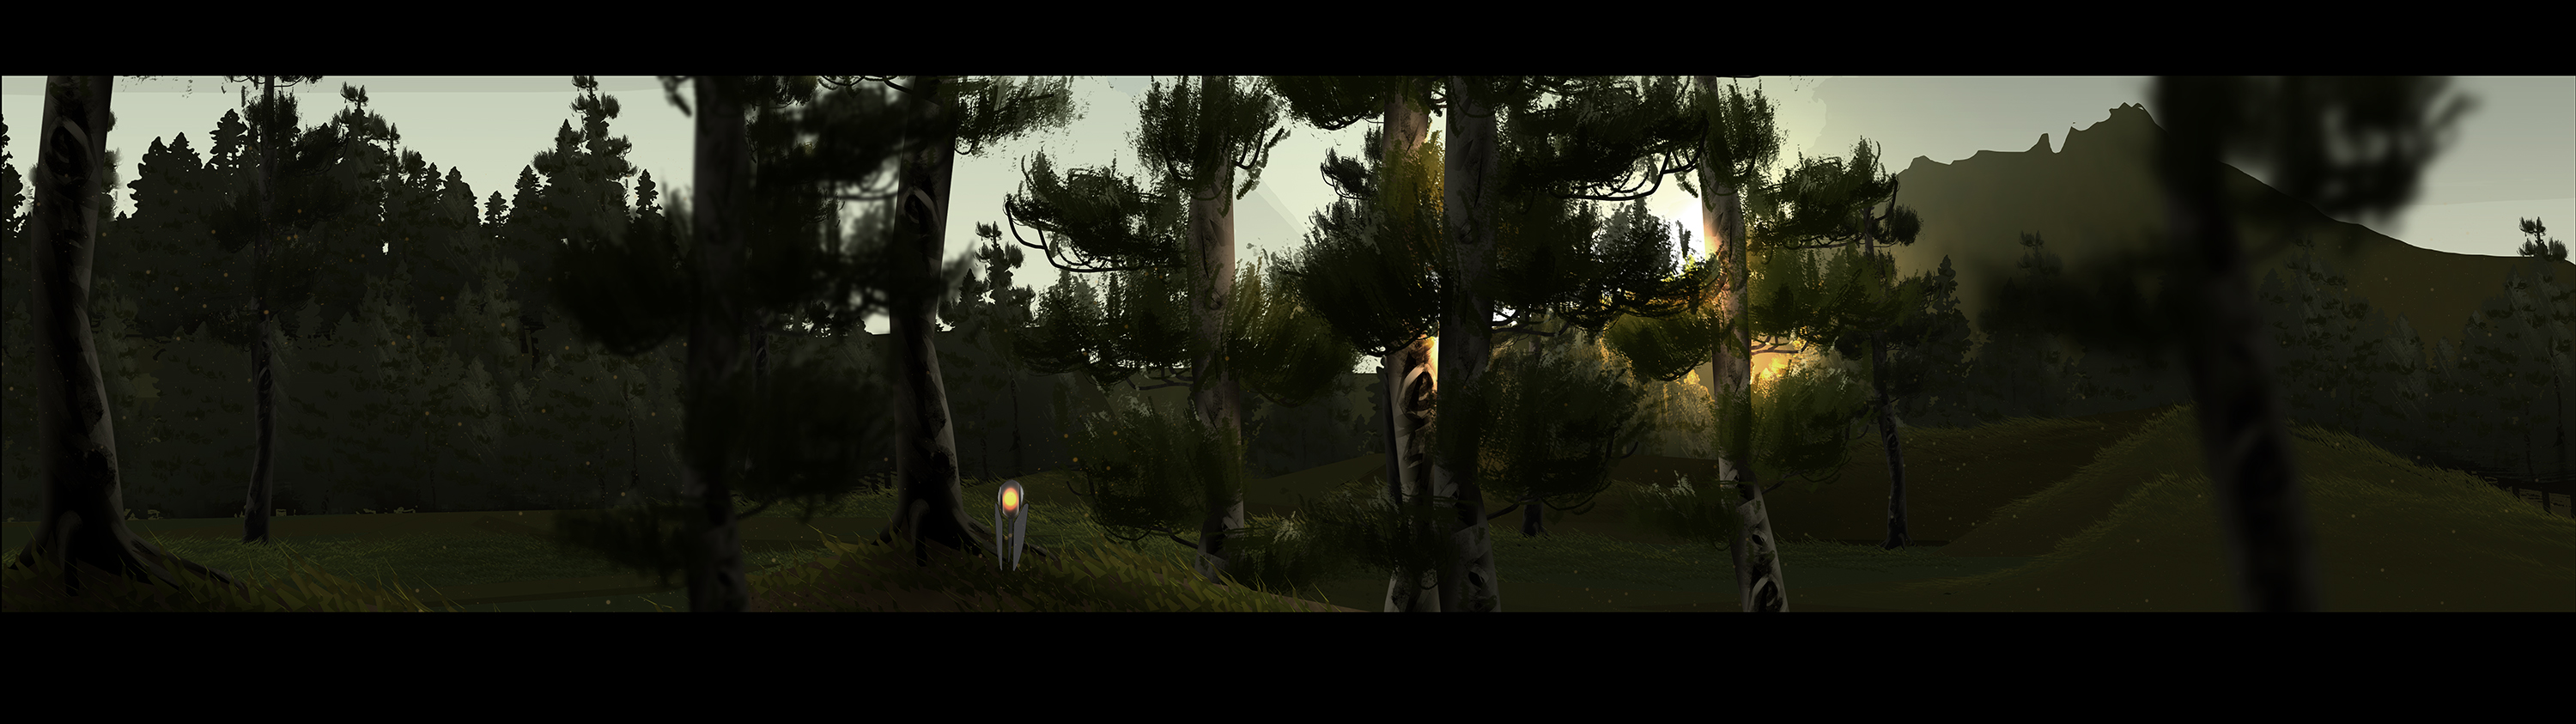 Arc_forest_alive